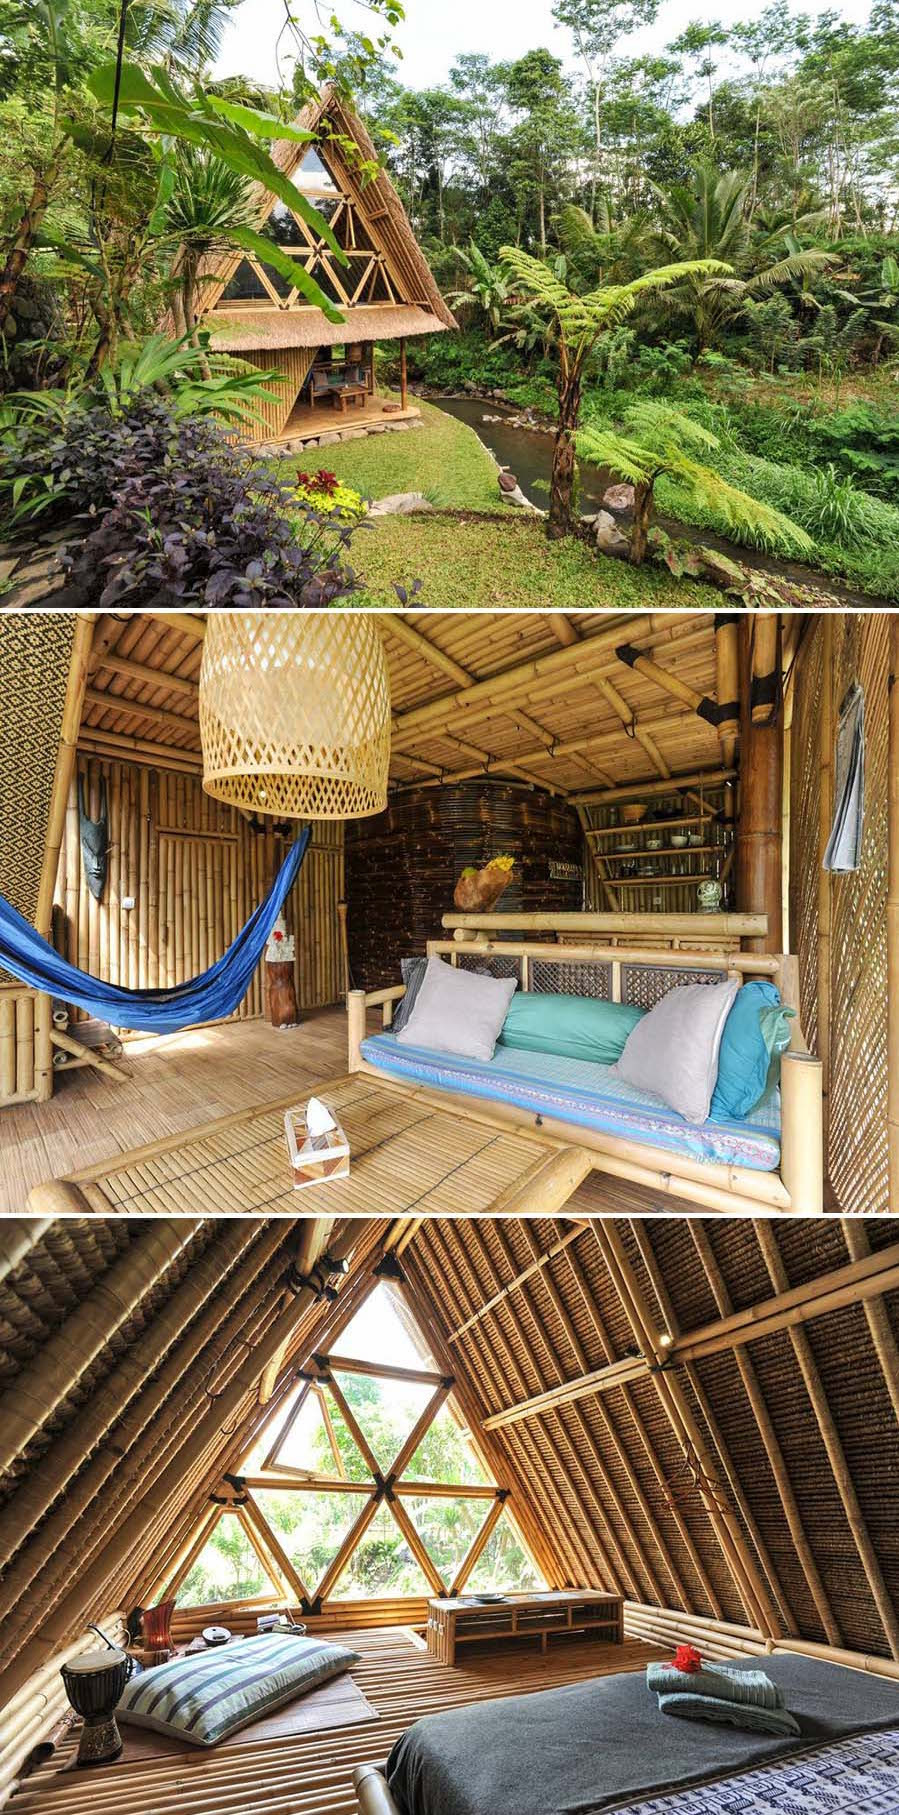 The Most Beautiful Bungalow In the World Beautiful the Most Beautiful and Unique Airbnbs to Add to Your 2018